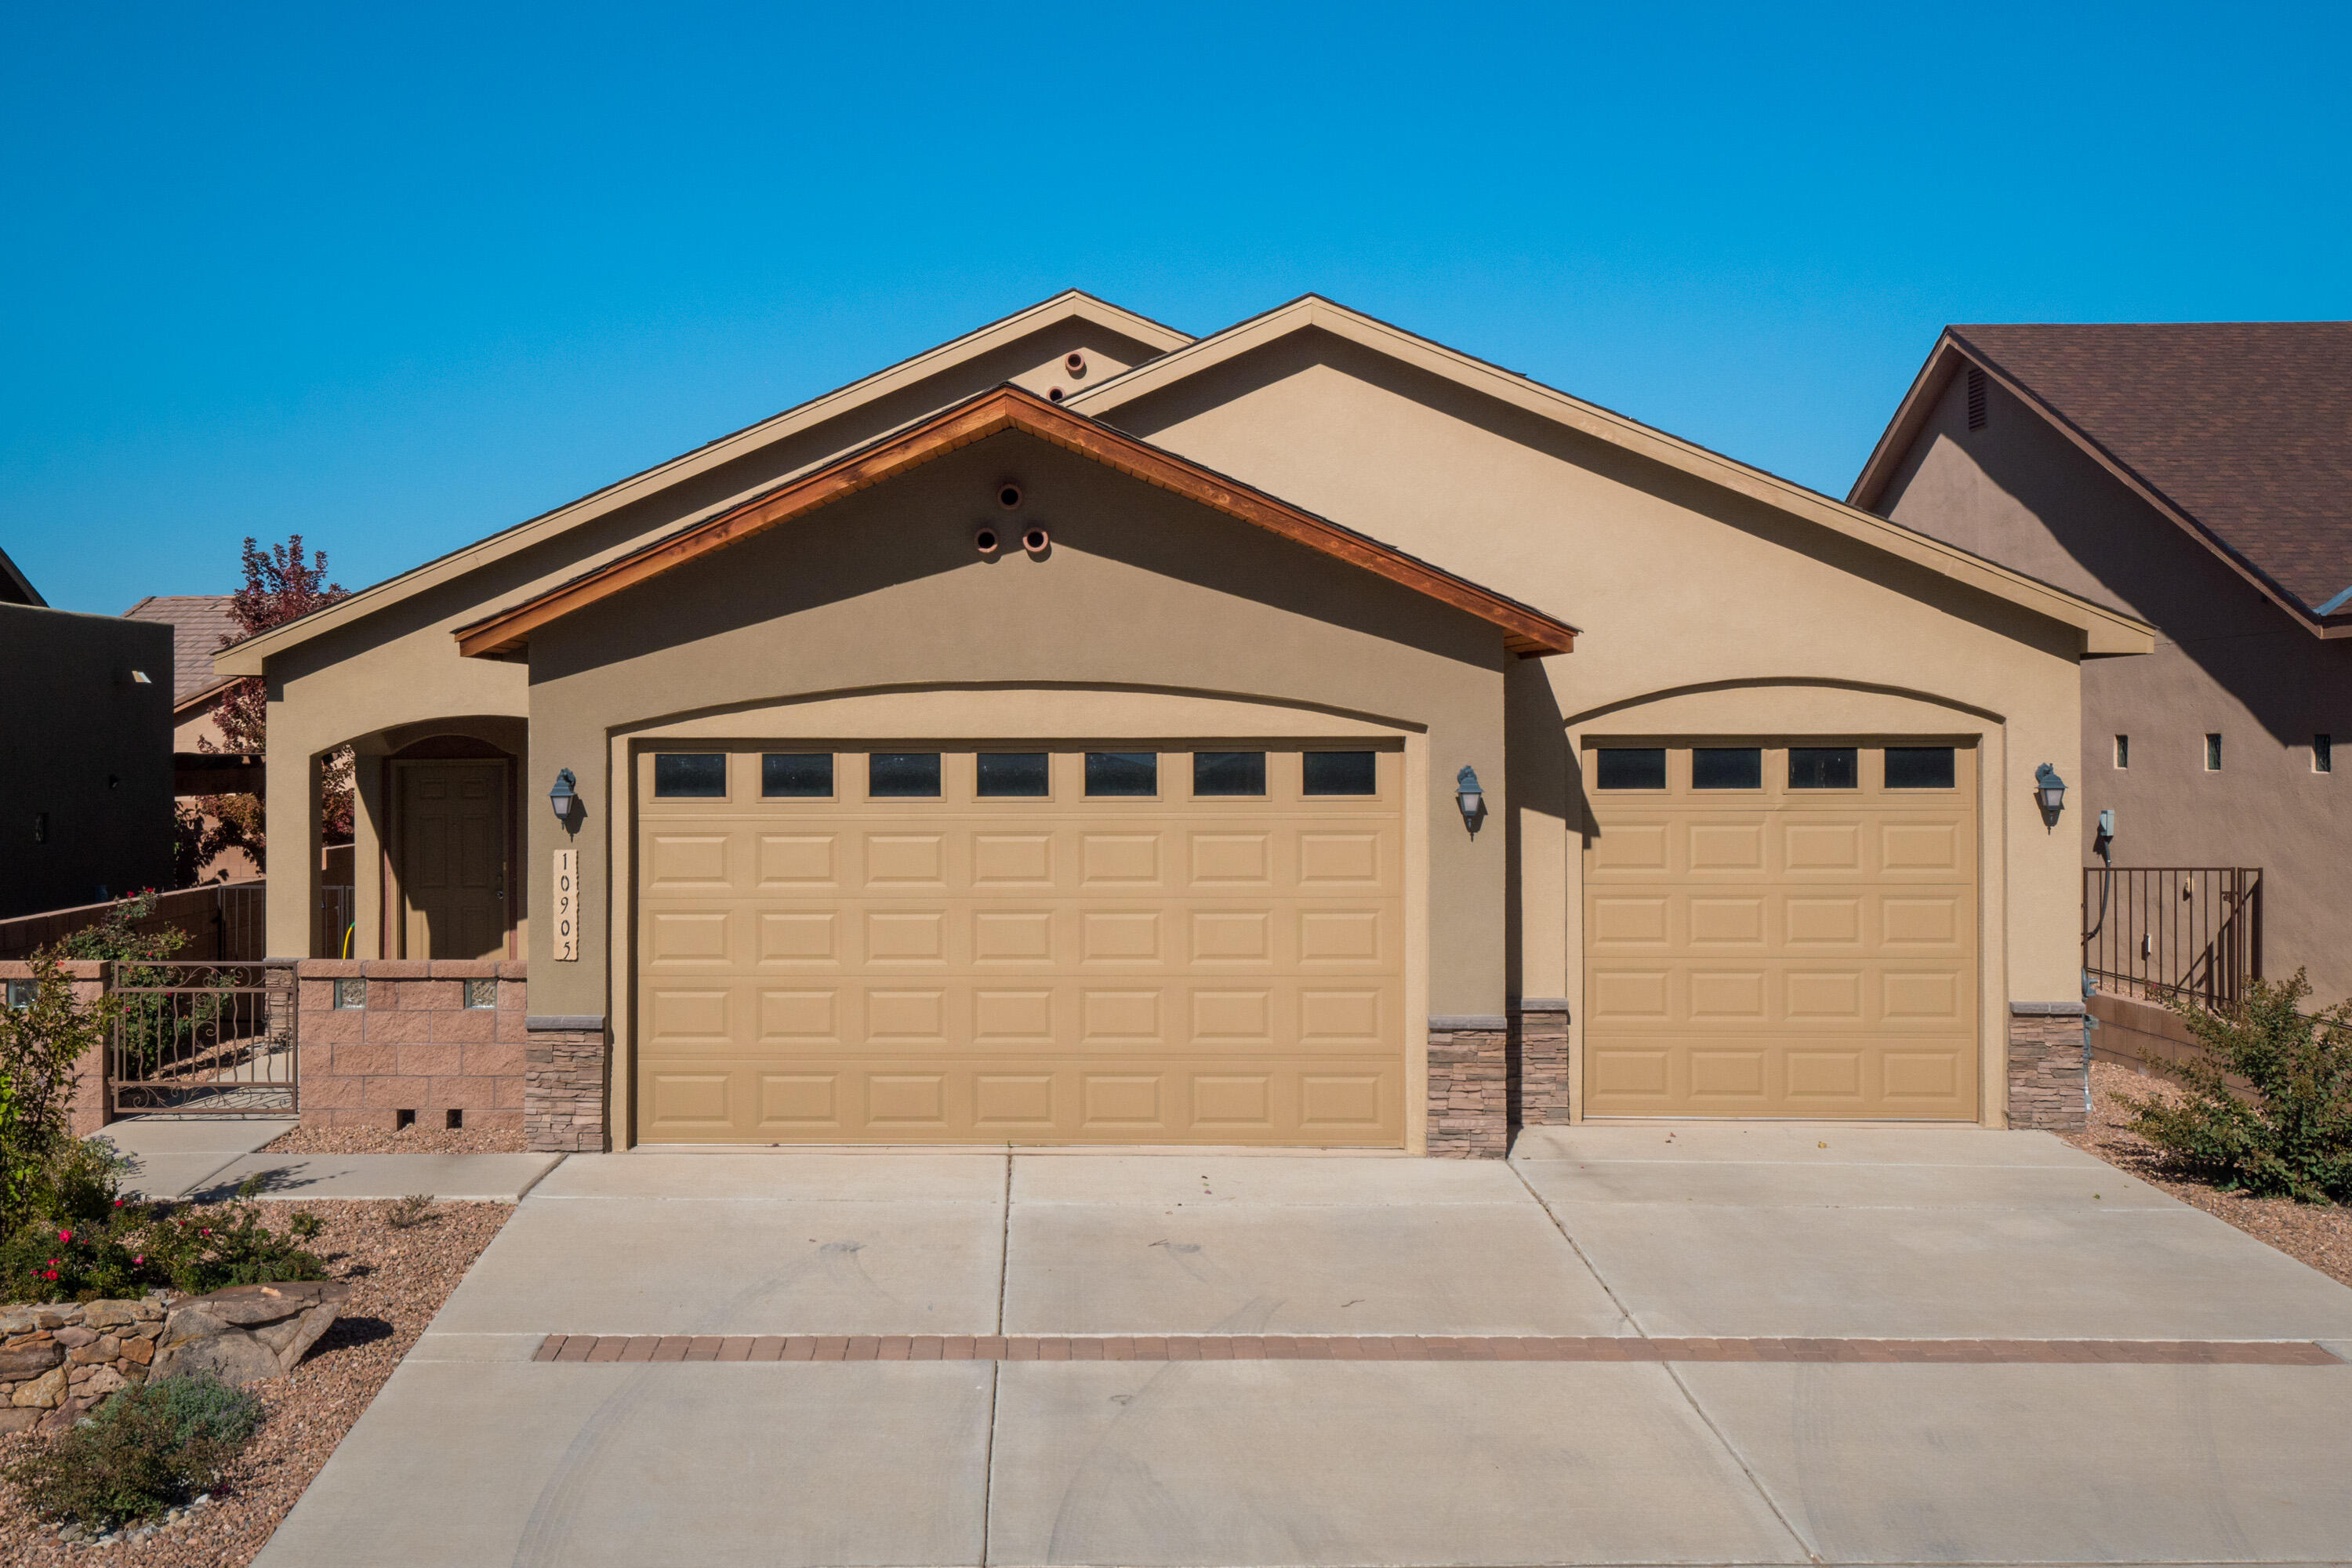 You could start the new year in this Sweet Saltillo home !! Sought after home with 3 car garage -single level Green Build home- enter from a gated courtyard --it feels like new (just 5 years old)  with beautiful Hickory cabinets, cosy gas fireplace with stone surround. Great layout -master has a double vanity with 2 closets.  2 additional bedrooms plus a dining area. Large covered patio with gas stub. All this AND the benefits of a Paul Allen energy efficient home- Tankless heater Heater, 95% Efficient Furnace, Carrier 16 SEER Refrigerated Air, Low E Windows, -- Make sure you see it this weekend ..